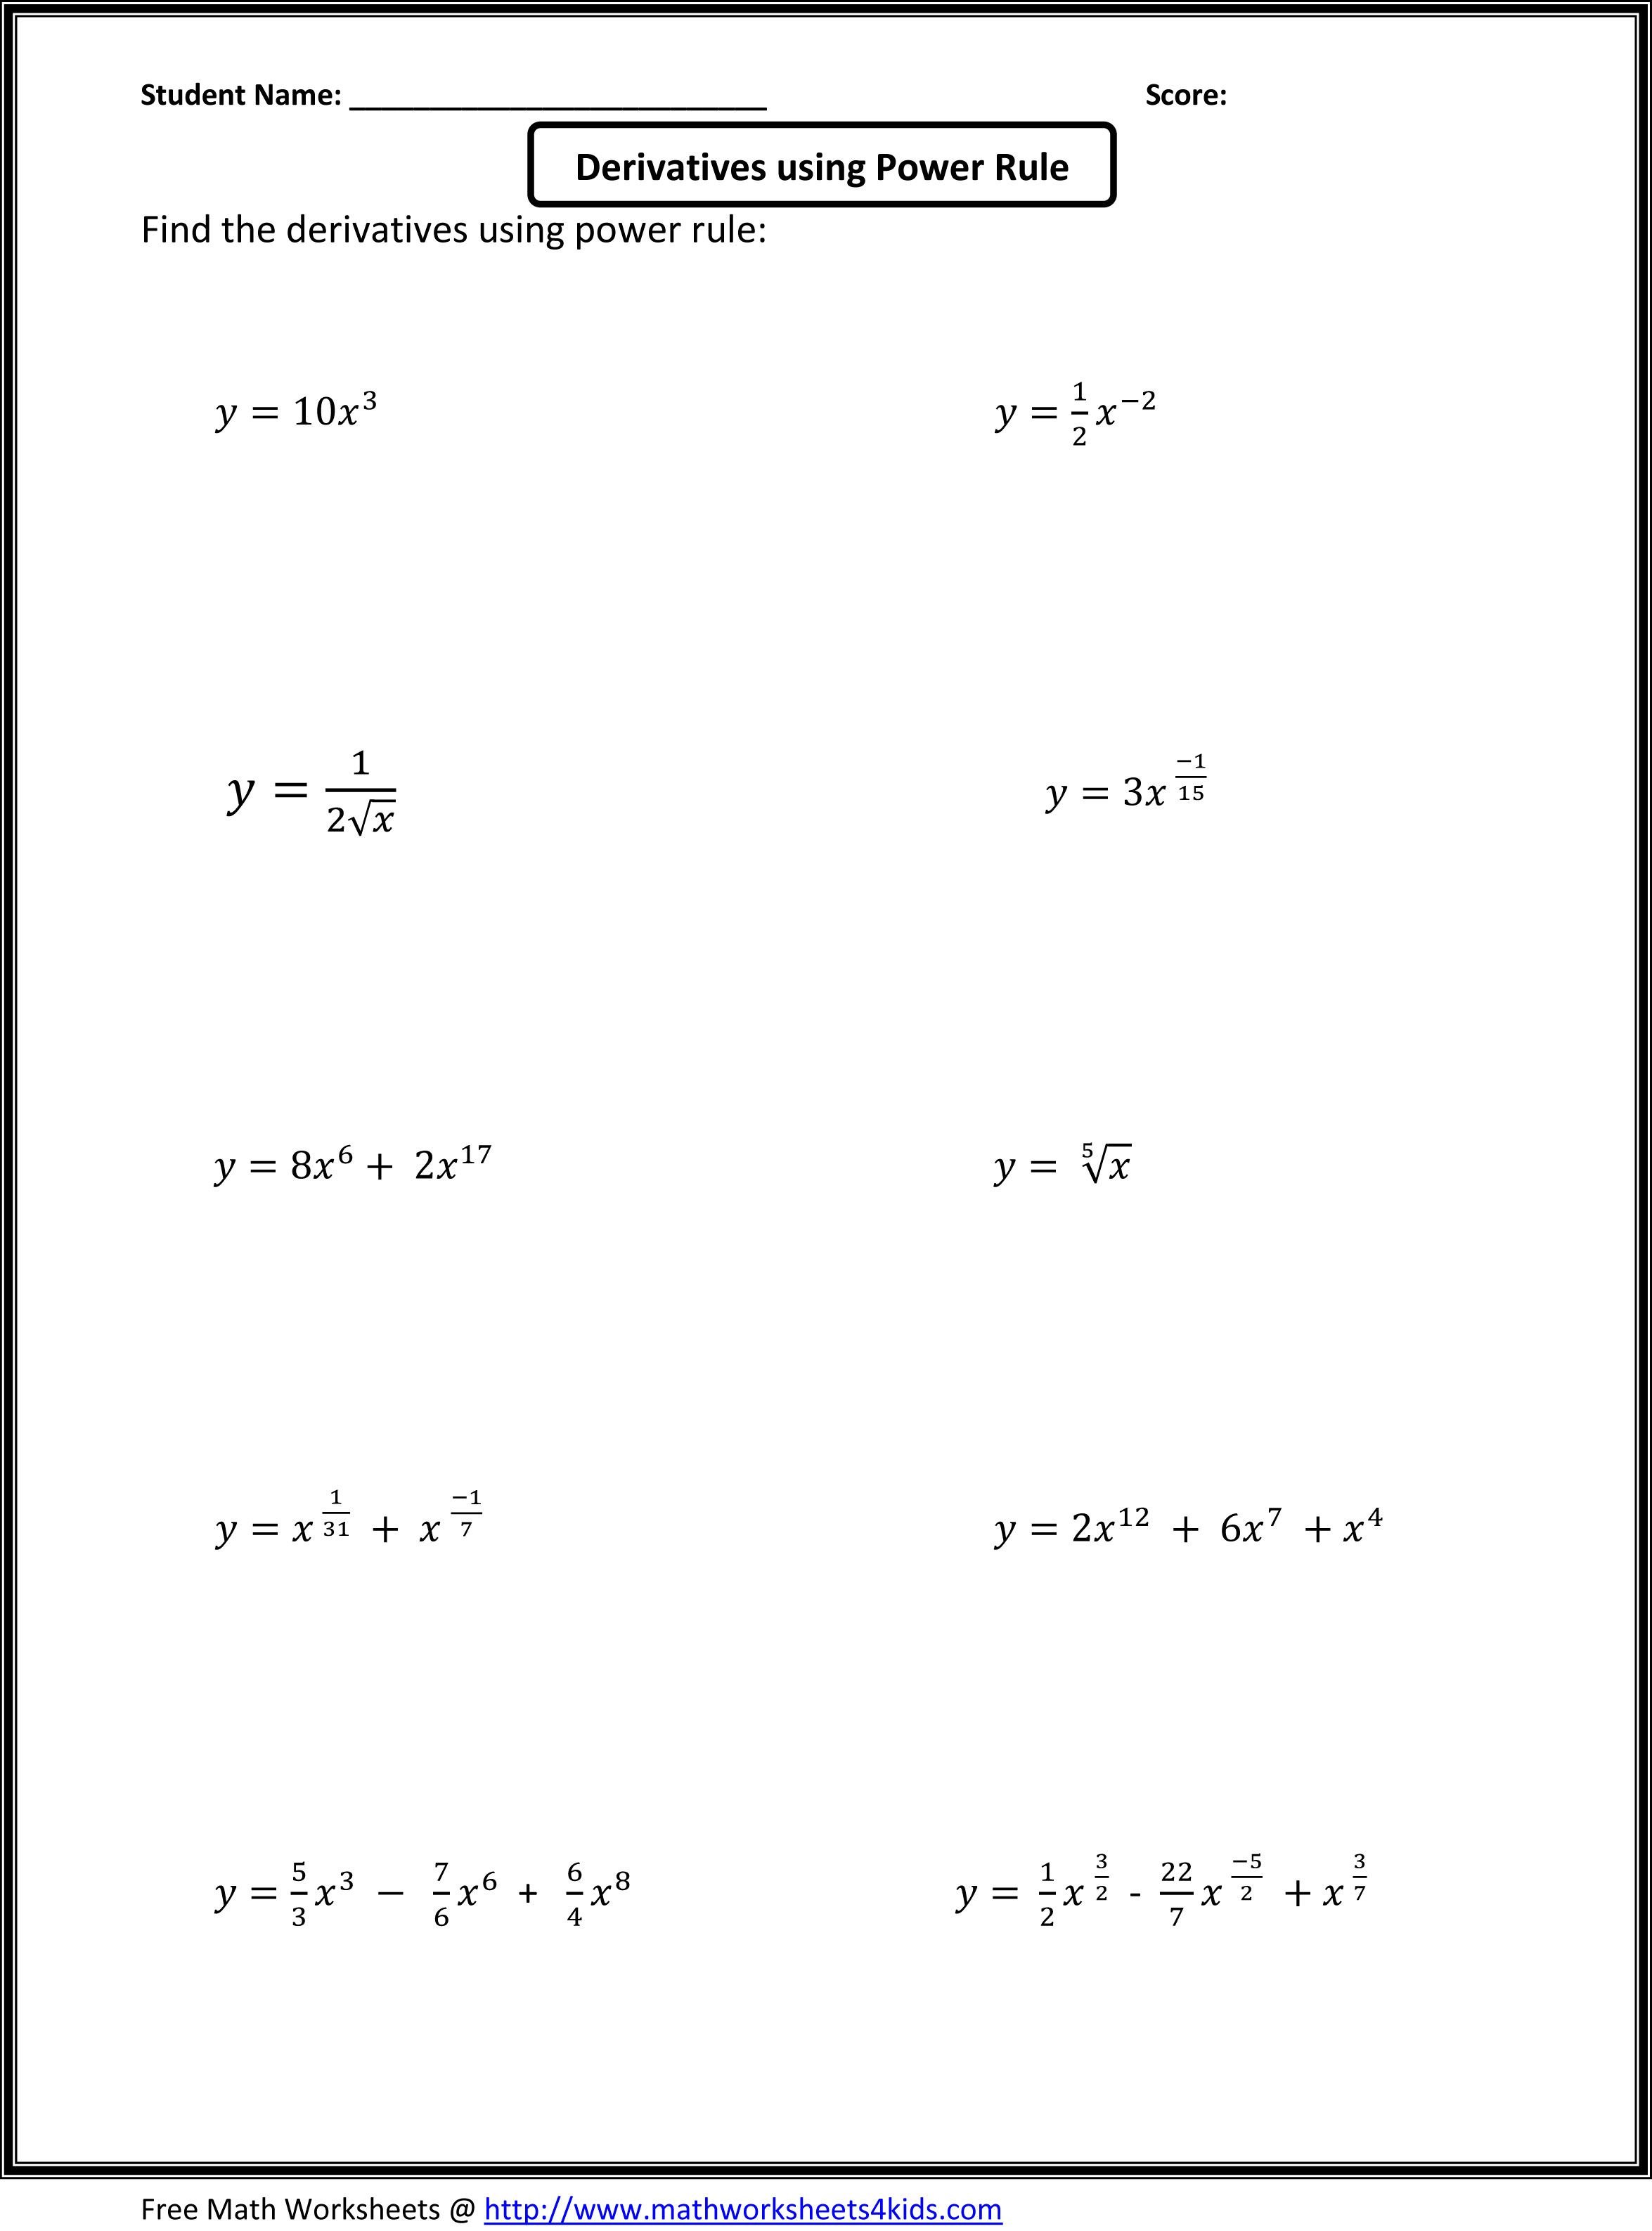 Image Result For Grade 9 Math Worksheets Linear Equations